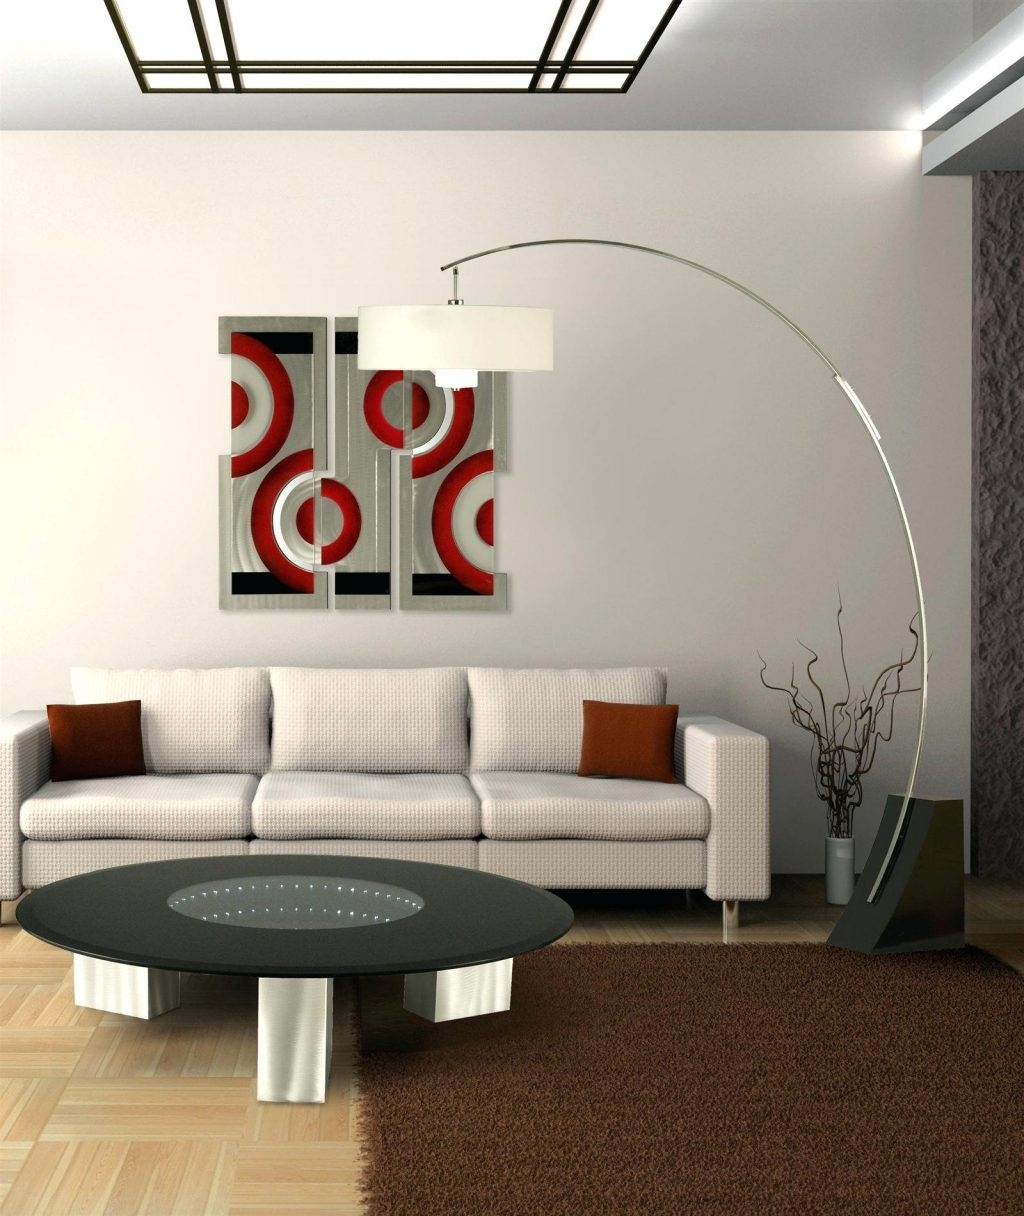 Endearing Floor Lamps For Living Room 28 Amazon Unique Wayfair That With Well Known Modern Living Room Table Lamps (Gallery 4 of 20)